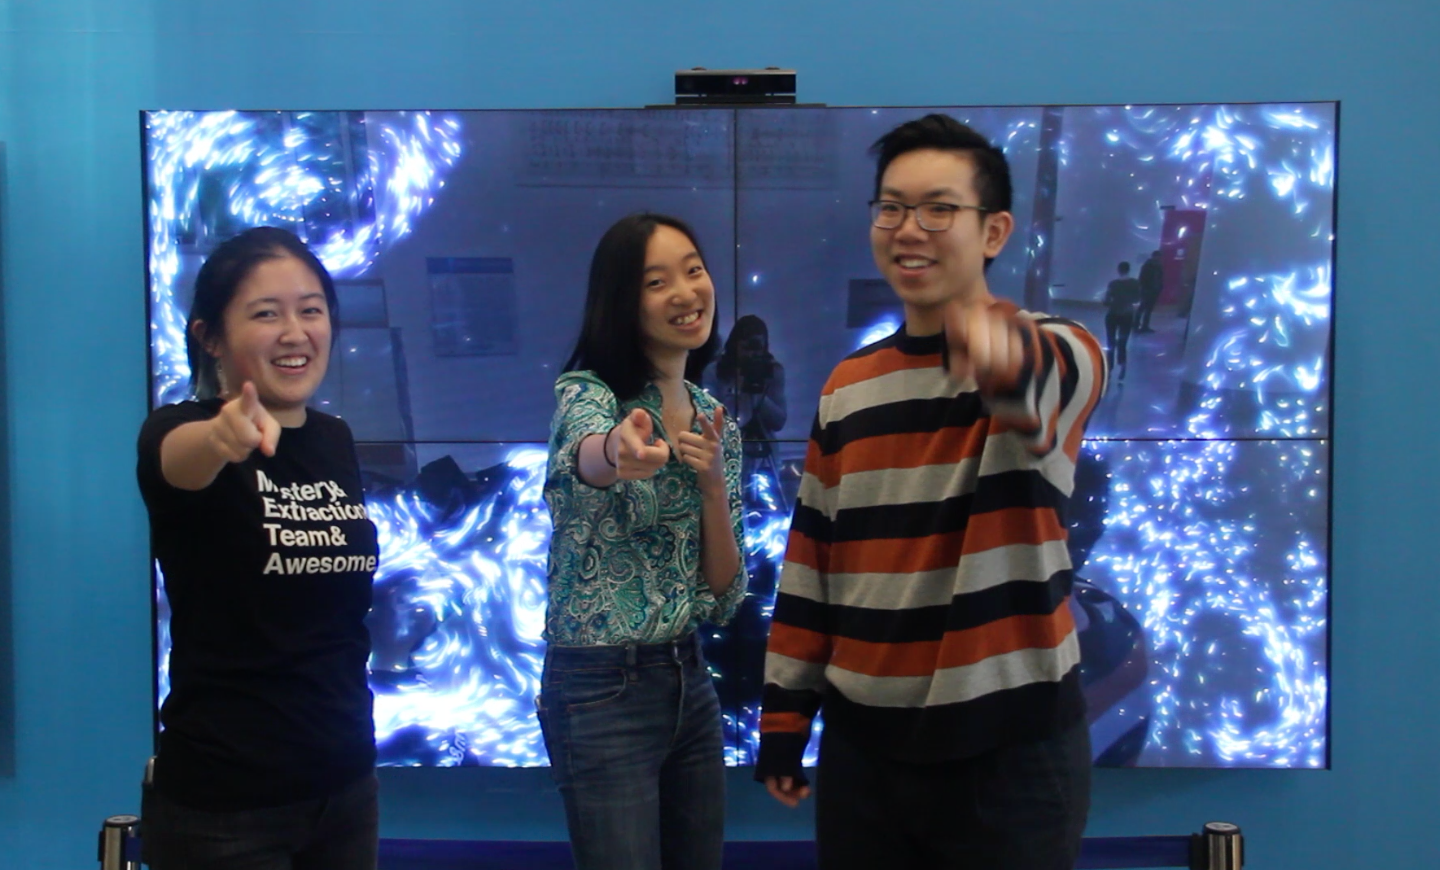 students standing in front of an interactive screen